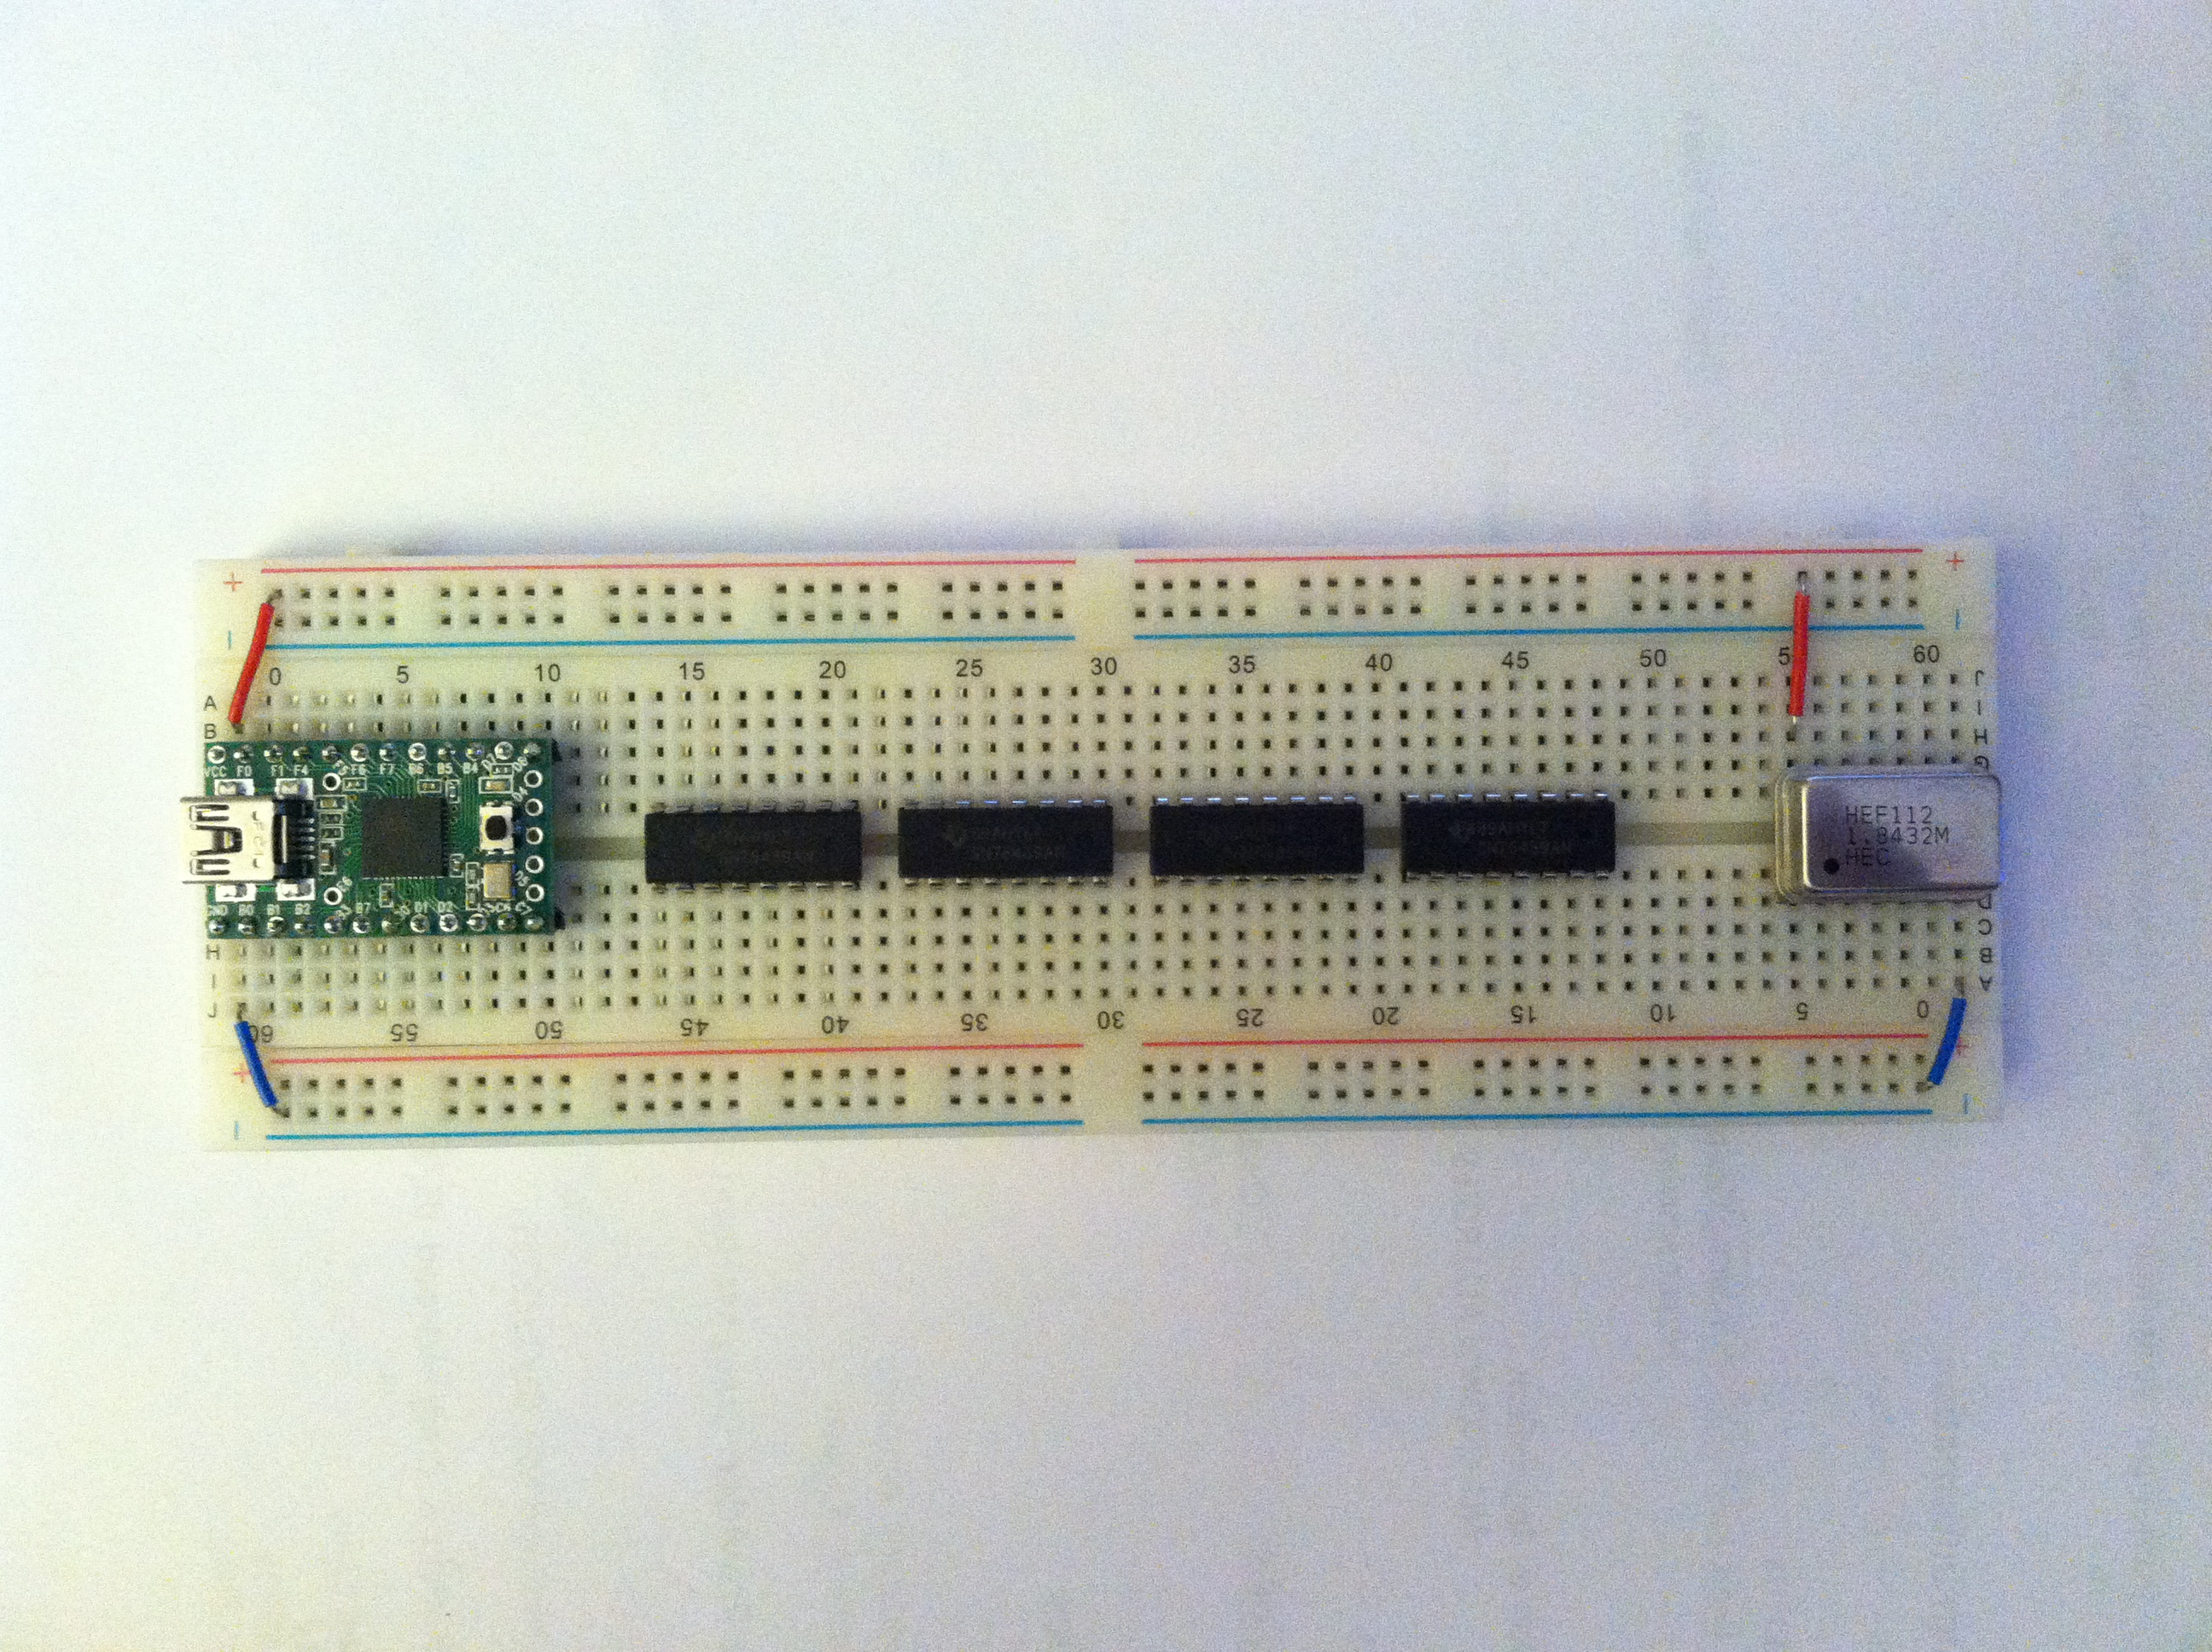 Sn76489 Chip Based Synthesizer Simon Hutchinson Quartz Clock Circuit Teensy Chips And Ready For Wiring